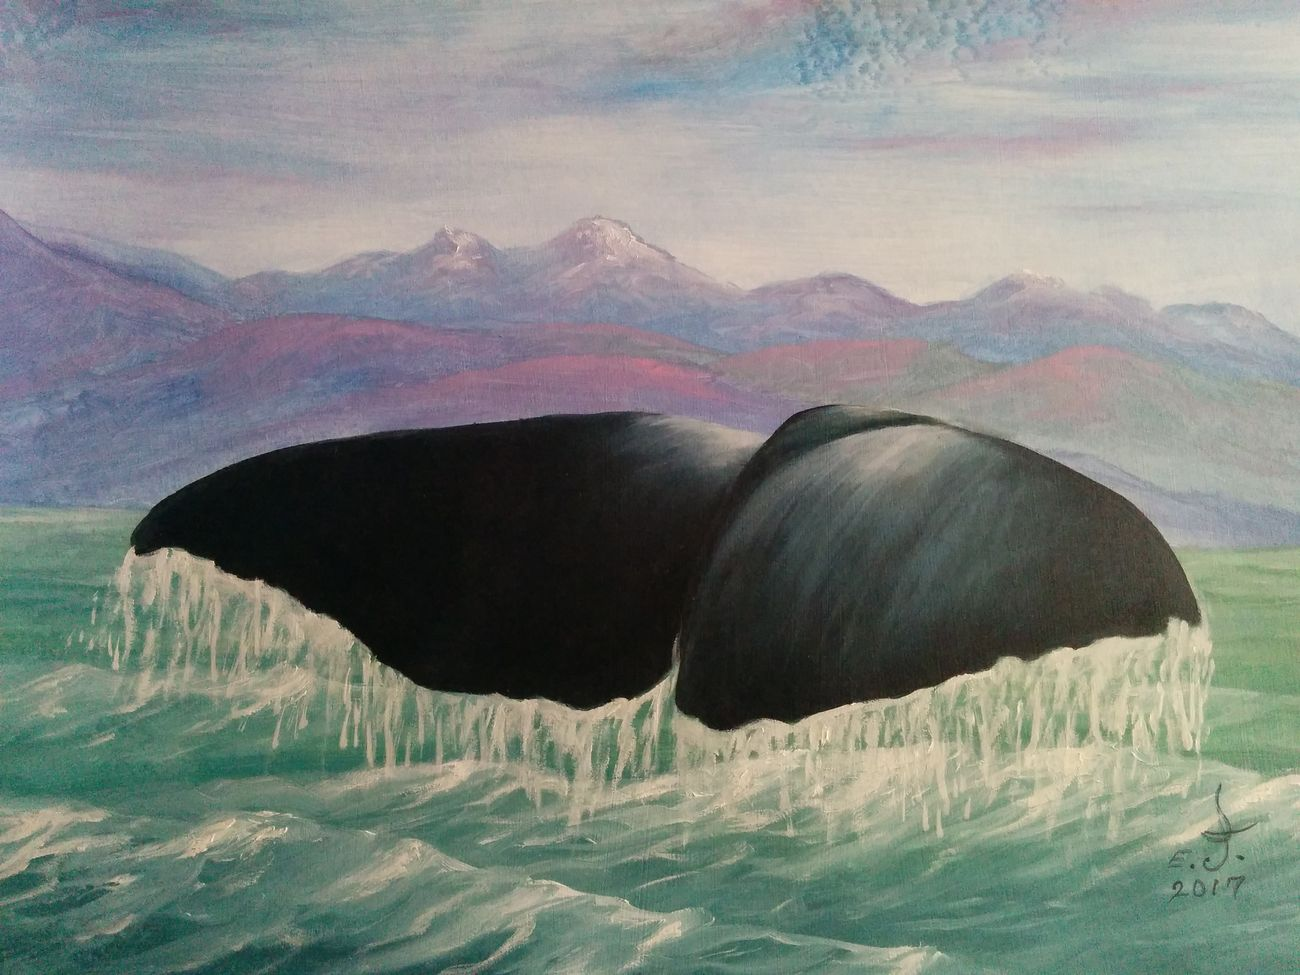 "Blue whale tail ,a majestic sea creature who soffered from us humans for centuries just for a few dollars ,please stop destroying our planet and please stop killing for profit,,,thank you.oil on canvas 18""_24"" Nature Beauty In Nature Wildlife Wildlife & Nature Marine Animal Blue Whale Precious Animals Beauty Oil Painting Fine Art Art Drawing Art, Drawing, Creativity One Animal Beauty In Nature ArtWork Scenics Original Art Animals In The Wild My Best Friends ❤ Love♥ Friendship. ♡   My Art Collection My Seascape Collection Sea Life dedicated to my best friend Ppbaby with lots of love and respect,,."